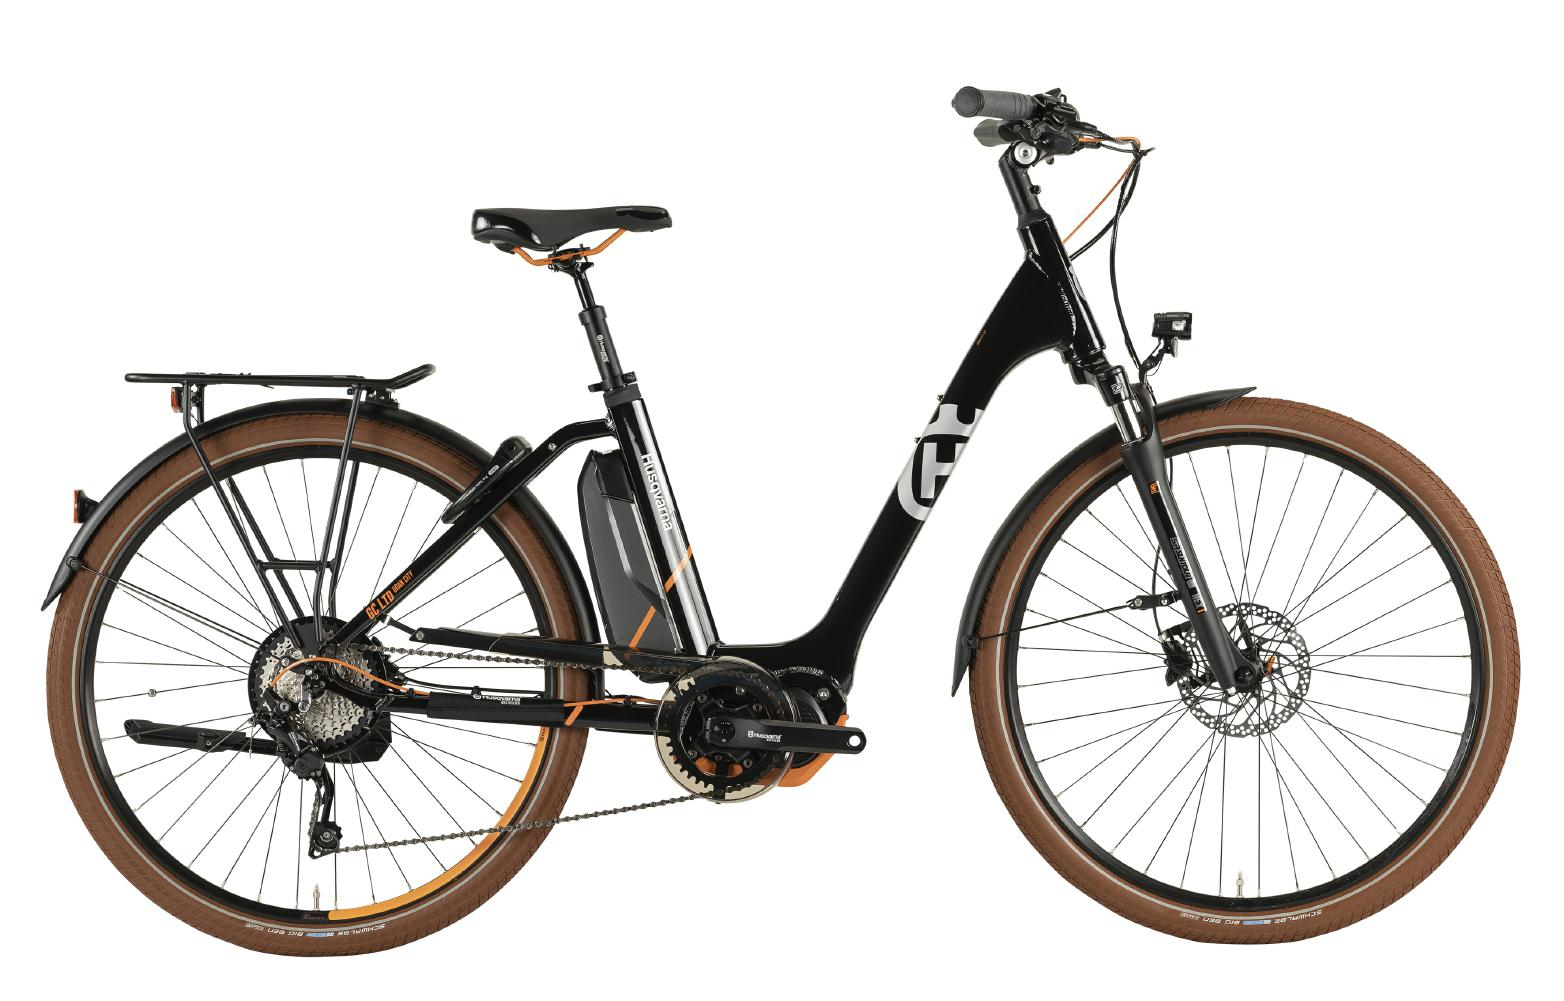 Husqvarna Gran City Anniversary Model GC LTD - black